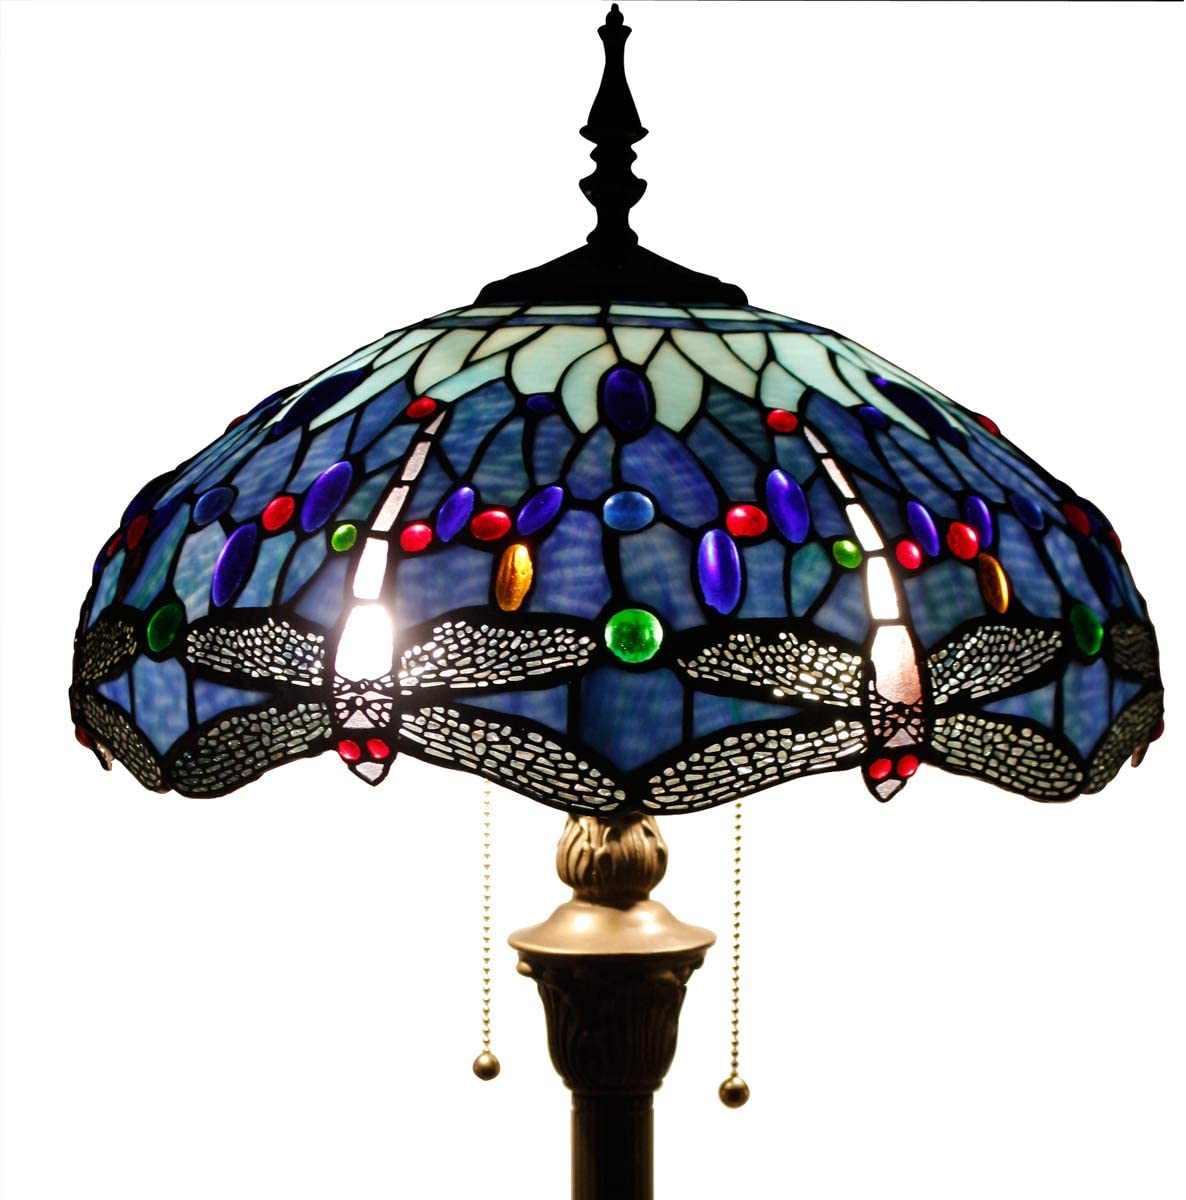 Tiffany Style Floor Lamp Stained Glass Standing Reading Light 64 Inch Tall Blue Purple Cloudly Crystal Lover Flower Shade 2 Pull Chain Antique Base Living Room Bedroom S558 WERFACTORY